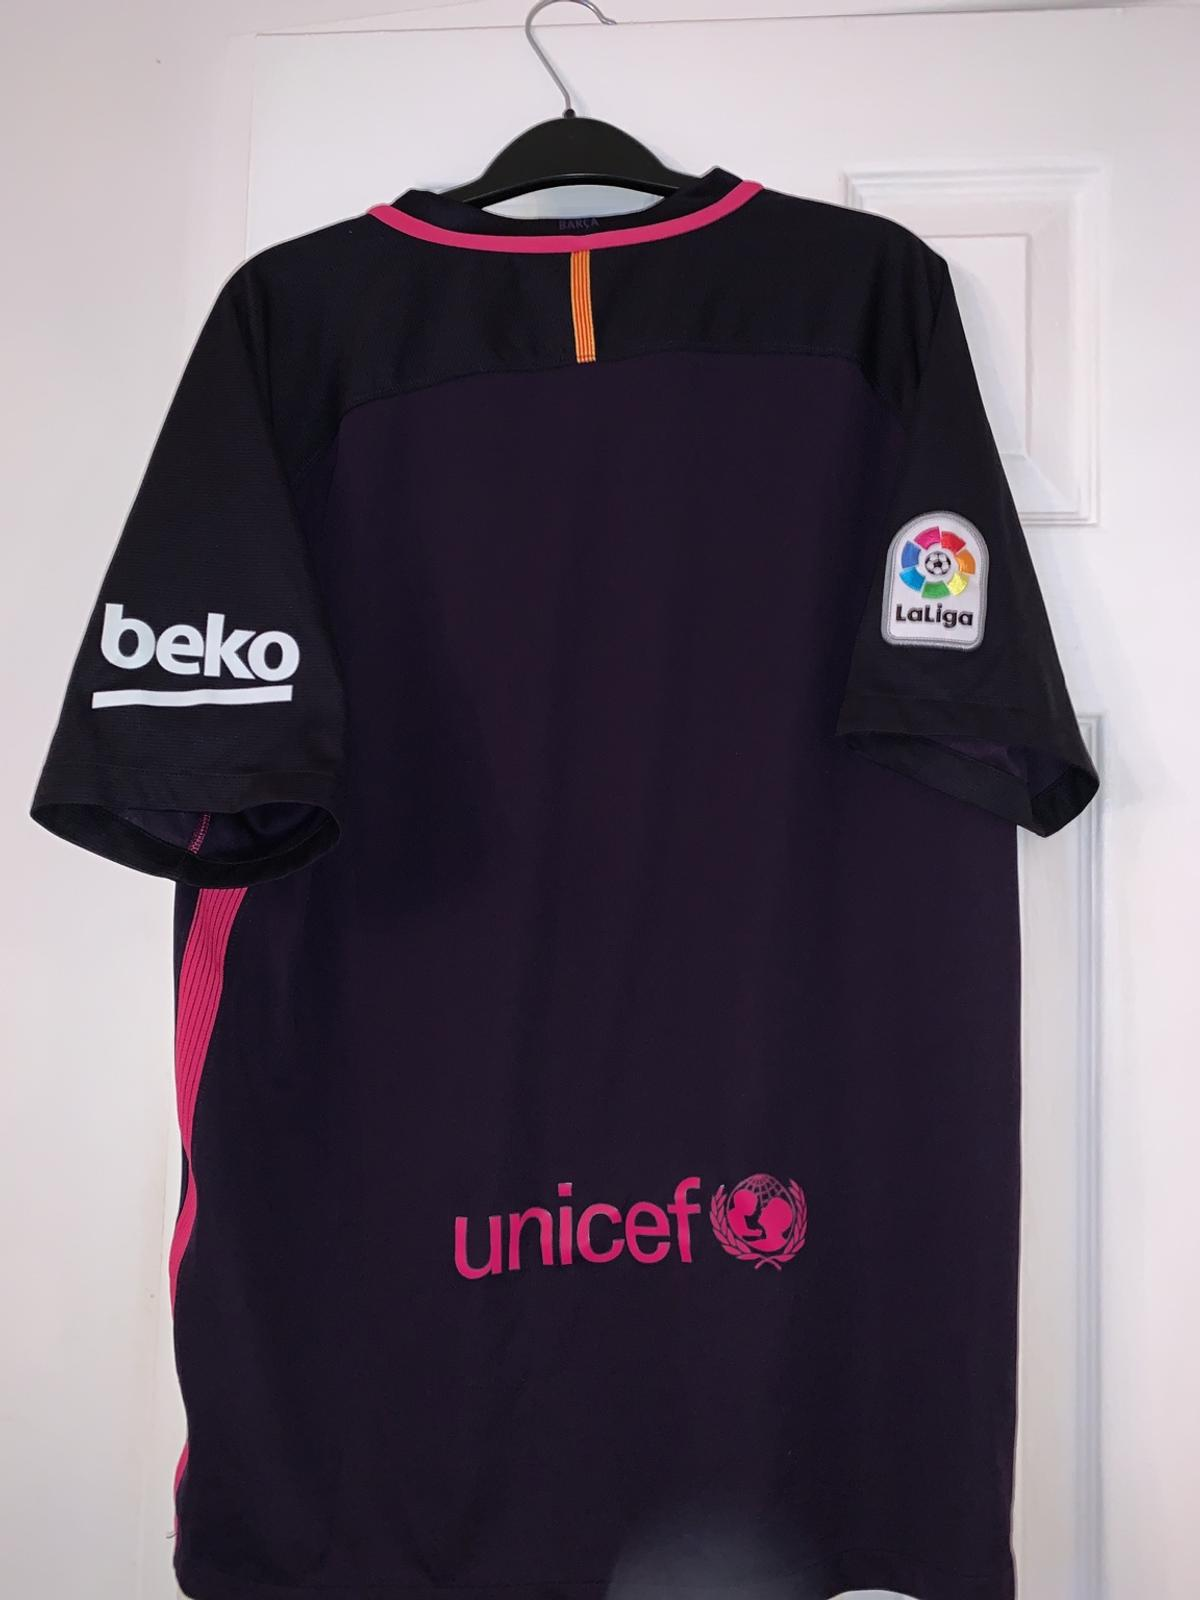 best service d4736 93a33 authentic purple barcelona jersey in WA9 Helens for £10.00 ...